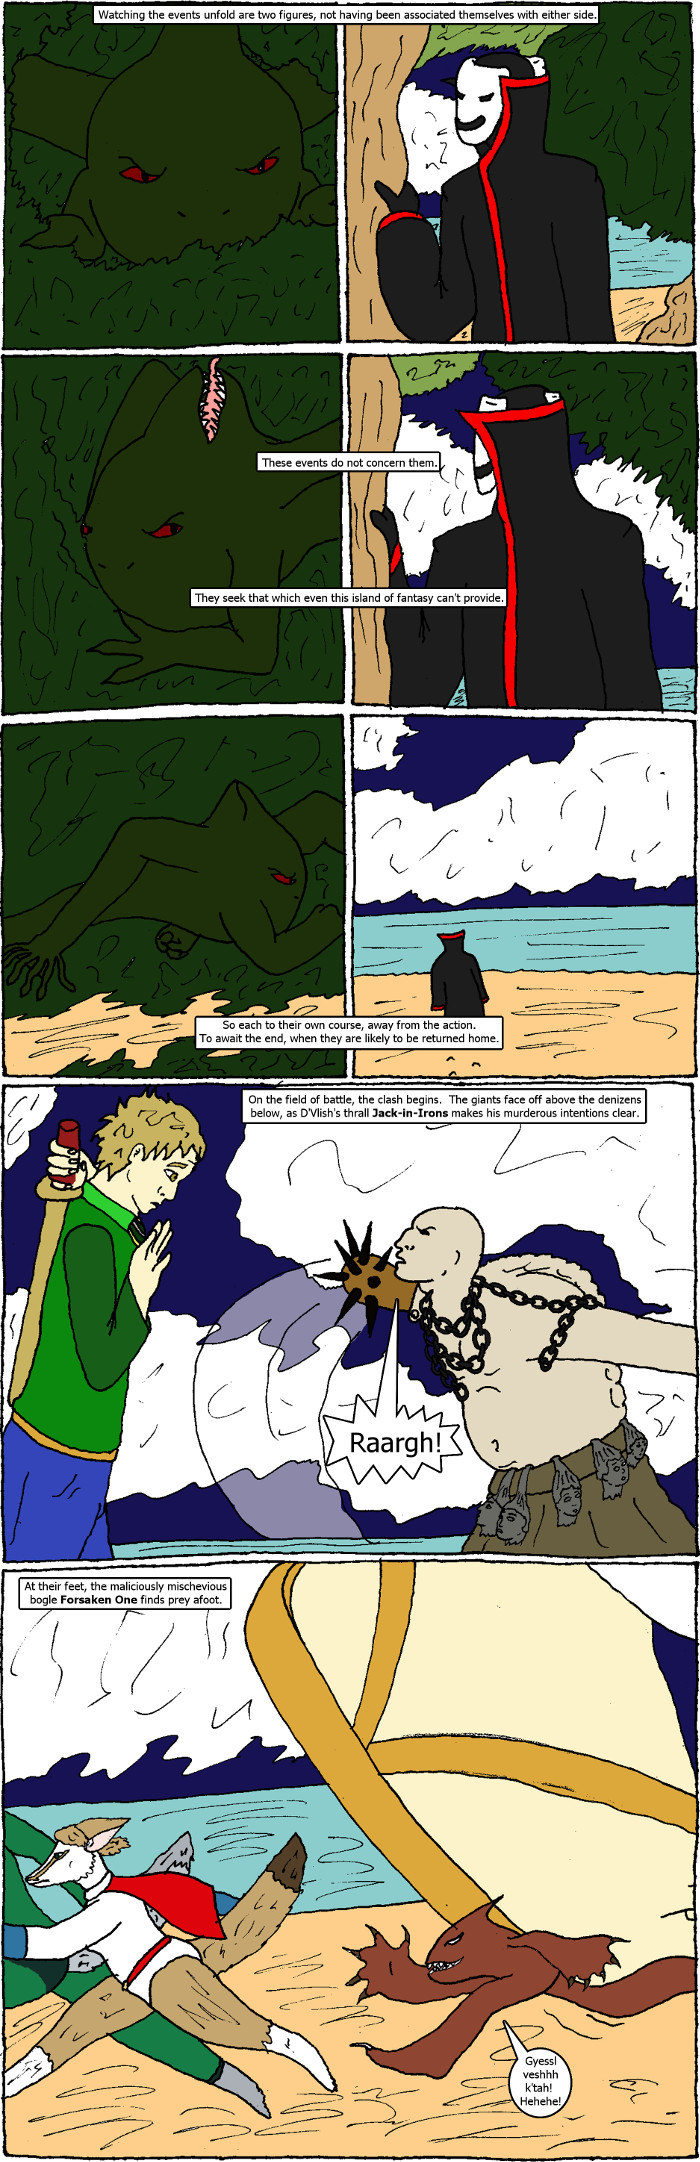 Pages 32-33: issue 2 - D'Vlish Attacks